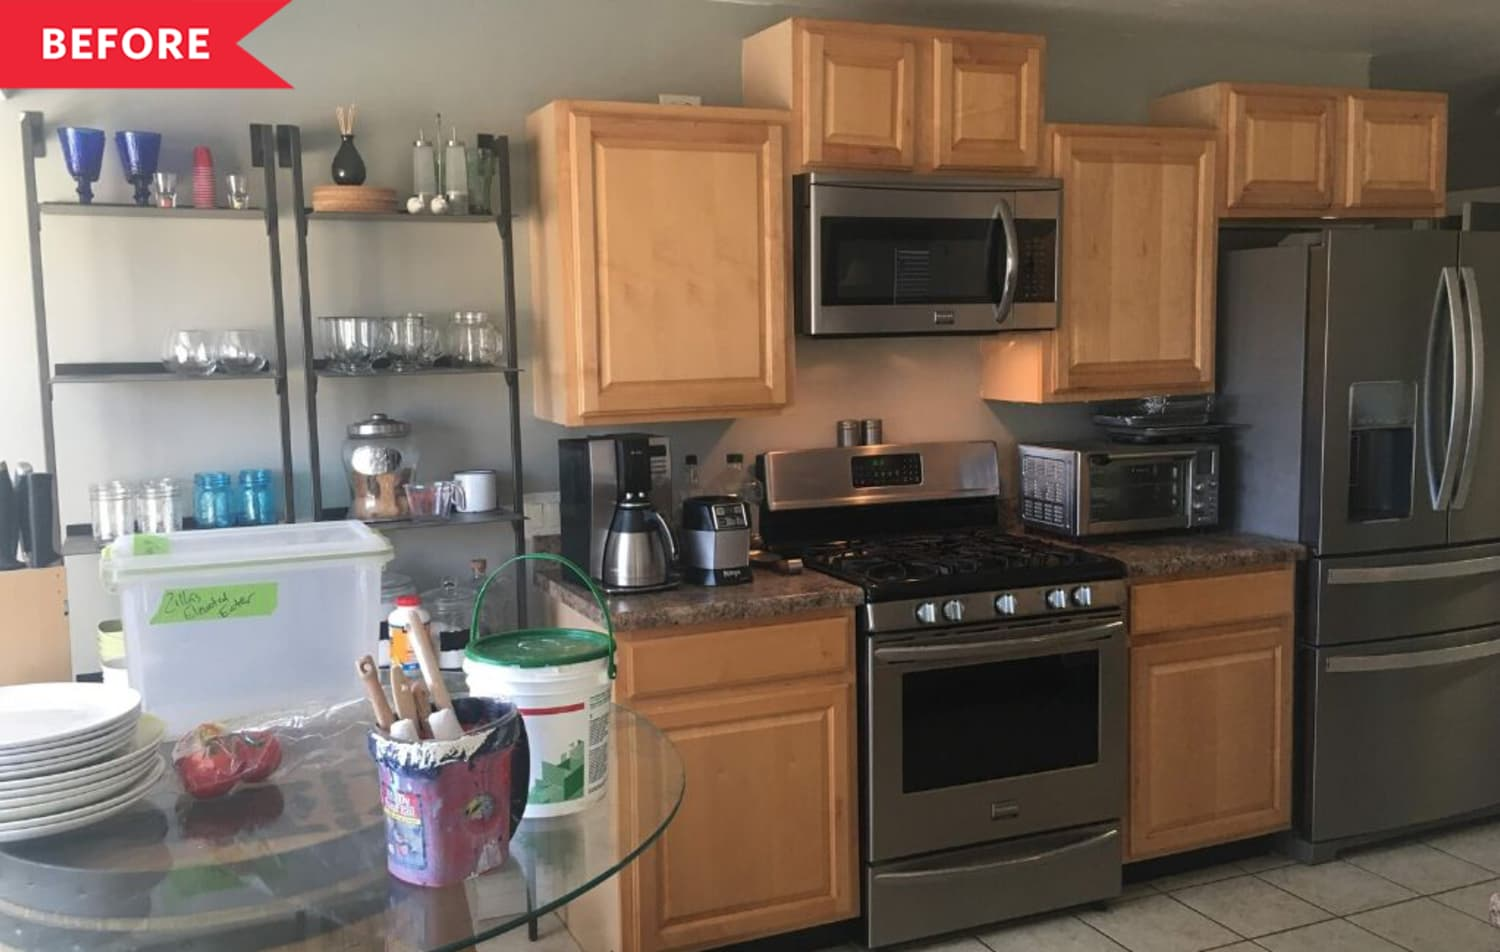 A $3,000 Kitchen Redo Featuring IKEA Cabinets and a New Farmhouse Style